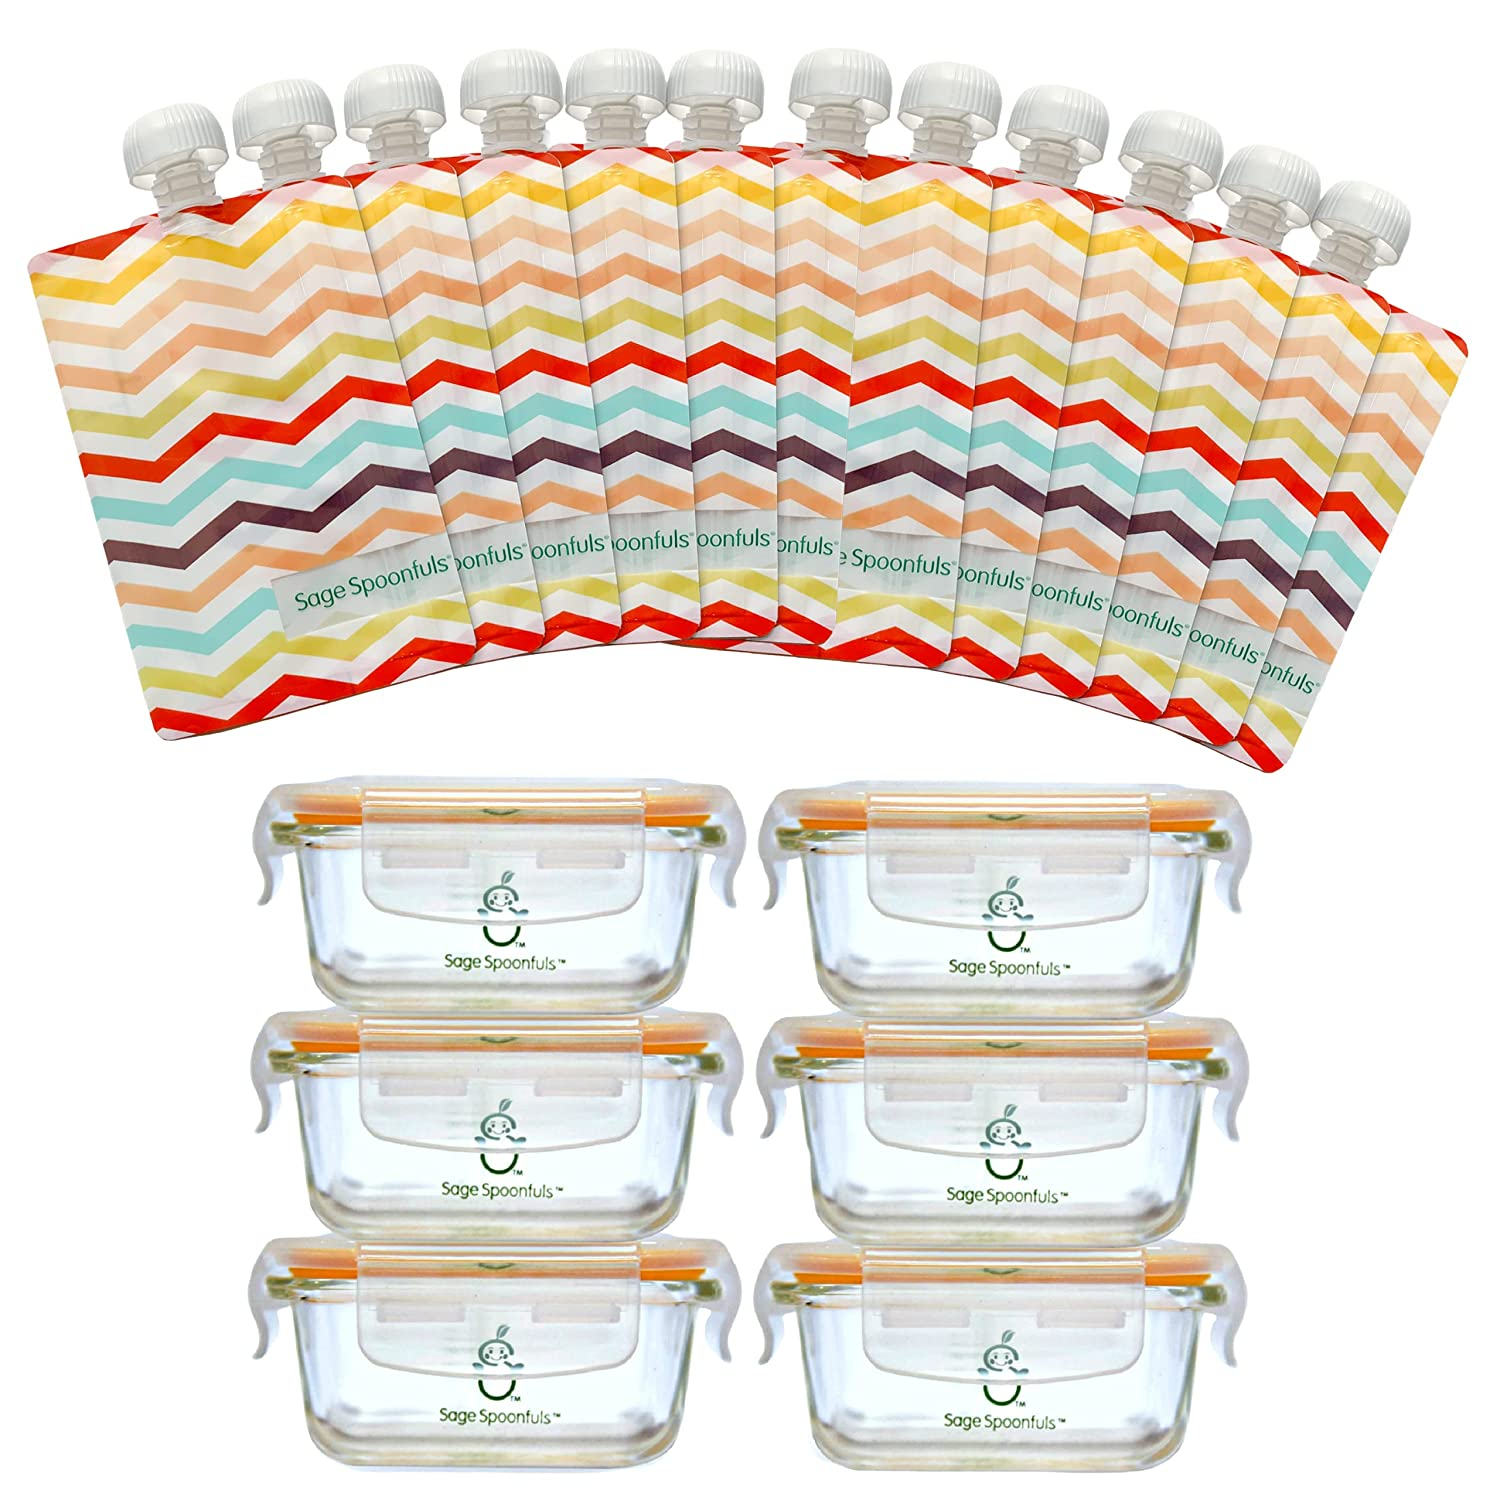 Sage Spoonfuls Glass Baby Food Jar and Reusable Baby Food Pouch Set - 6-Pack of 4oz Baby Food Jars and 12 Pouches - BPA, Lead, Phthalate, PVC-Free